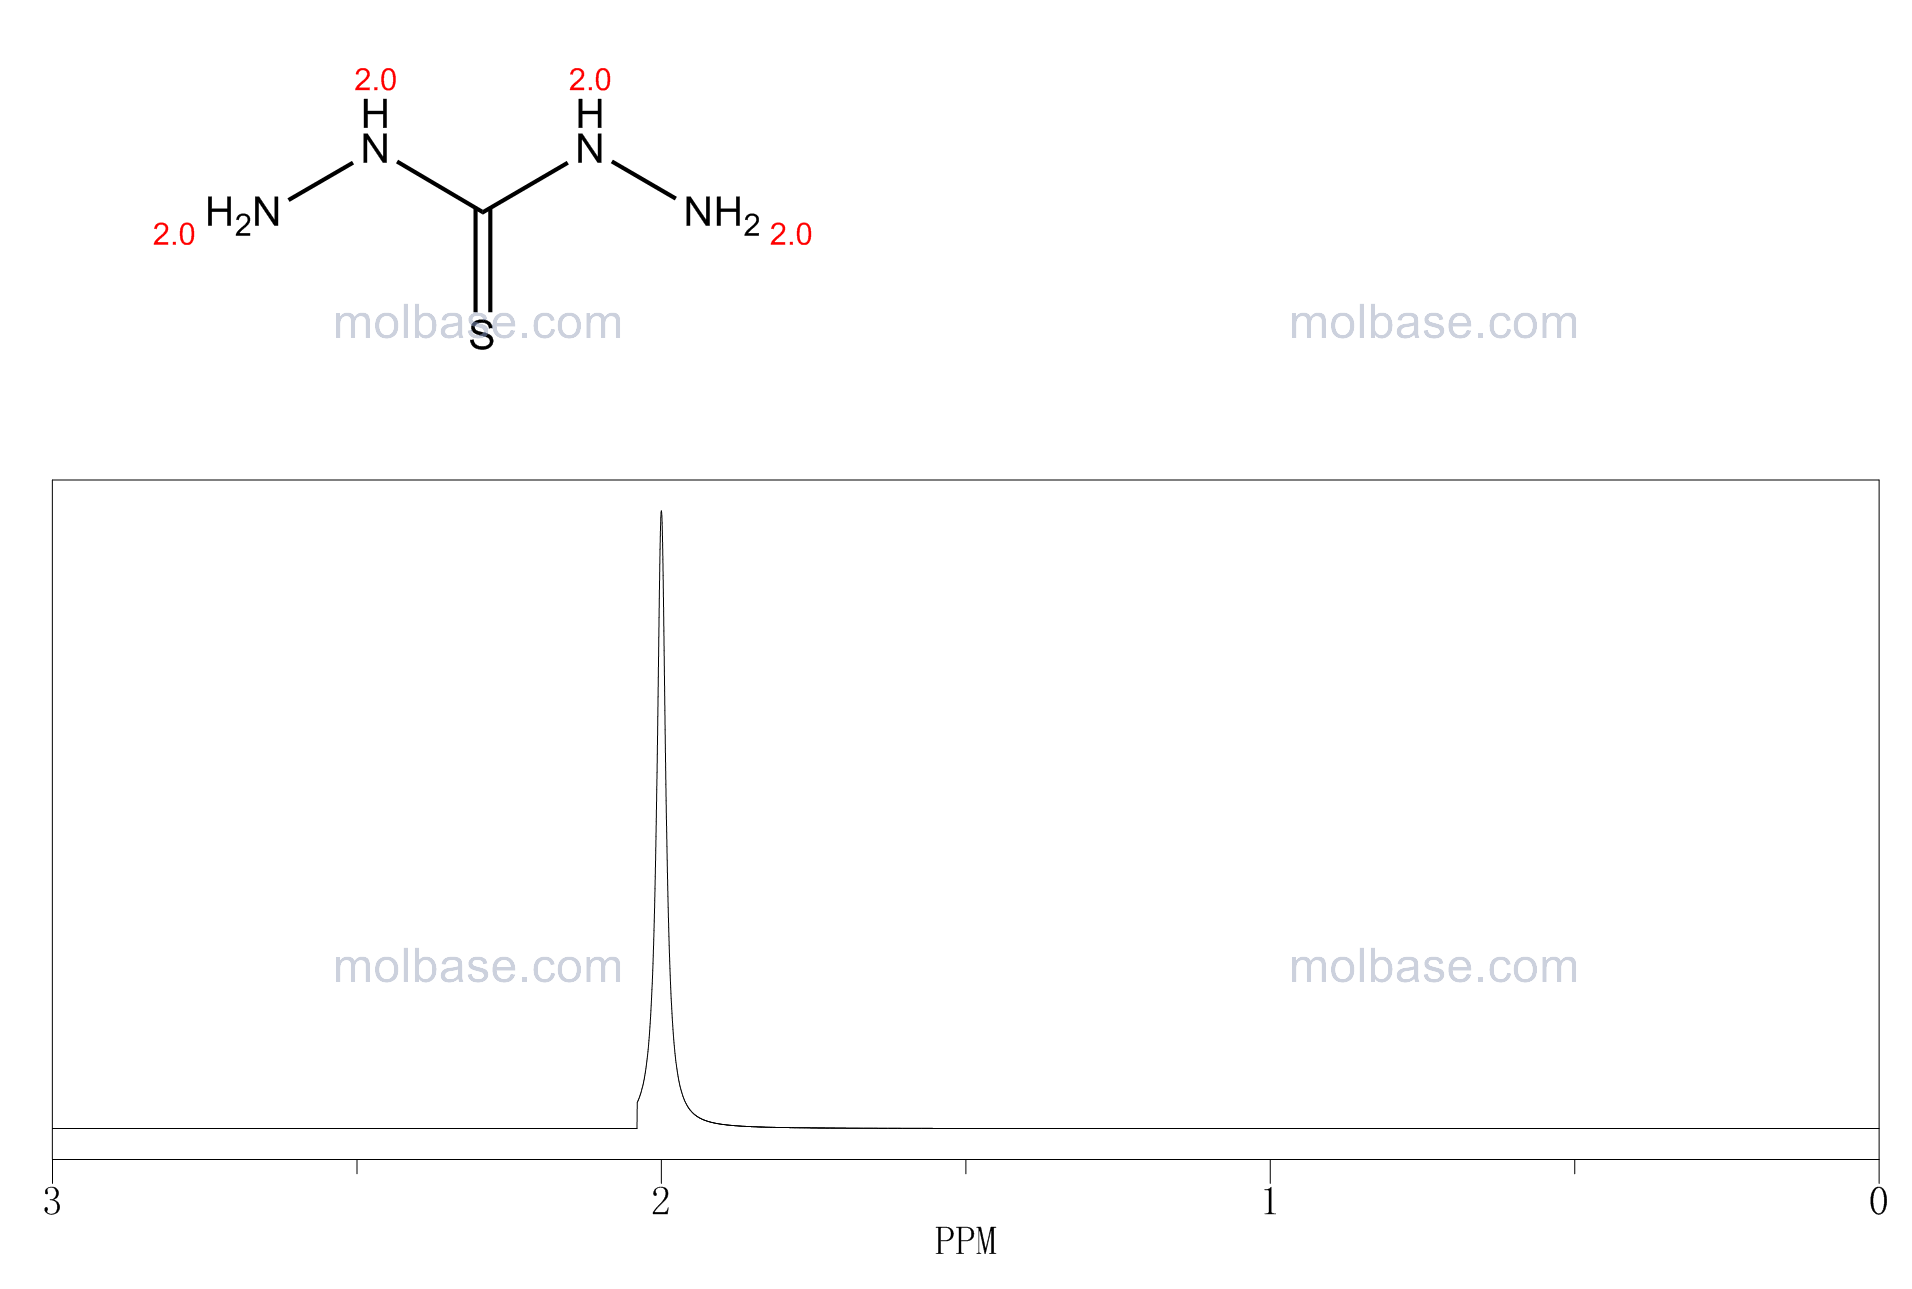 Thiocarbohydrazide NMR spectra analysis, Chemical CAS NO. 2231-57-4 NMR spectral analysis, Thiocarbohydrazide C-NMR spectrum